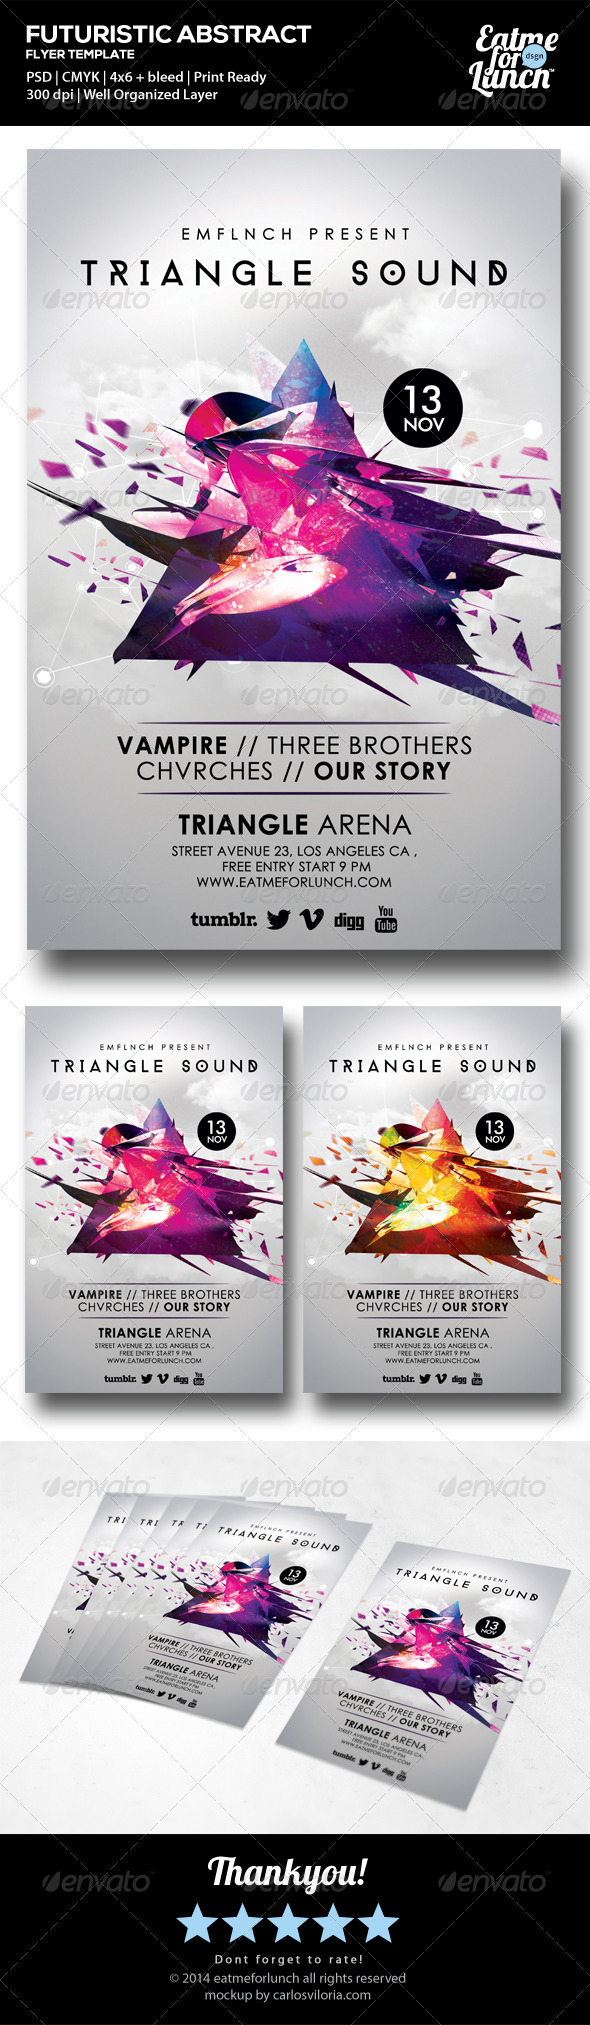 Futuristic Abstract Gigs Flyer Templates - Clubs & Parties Events